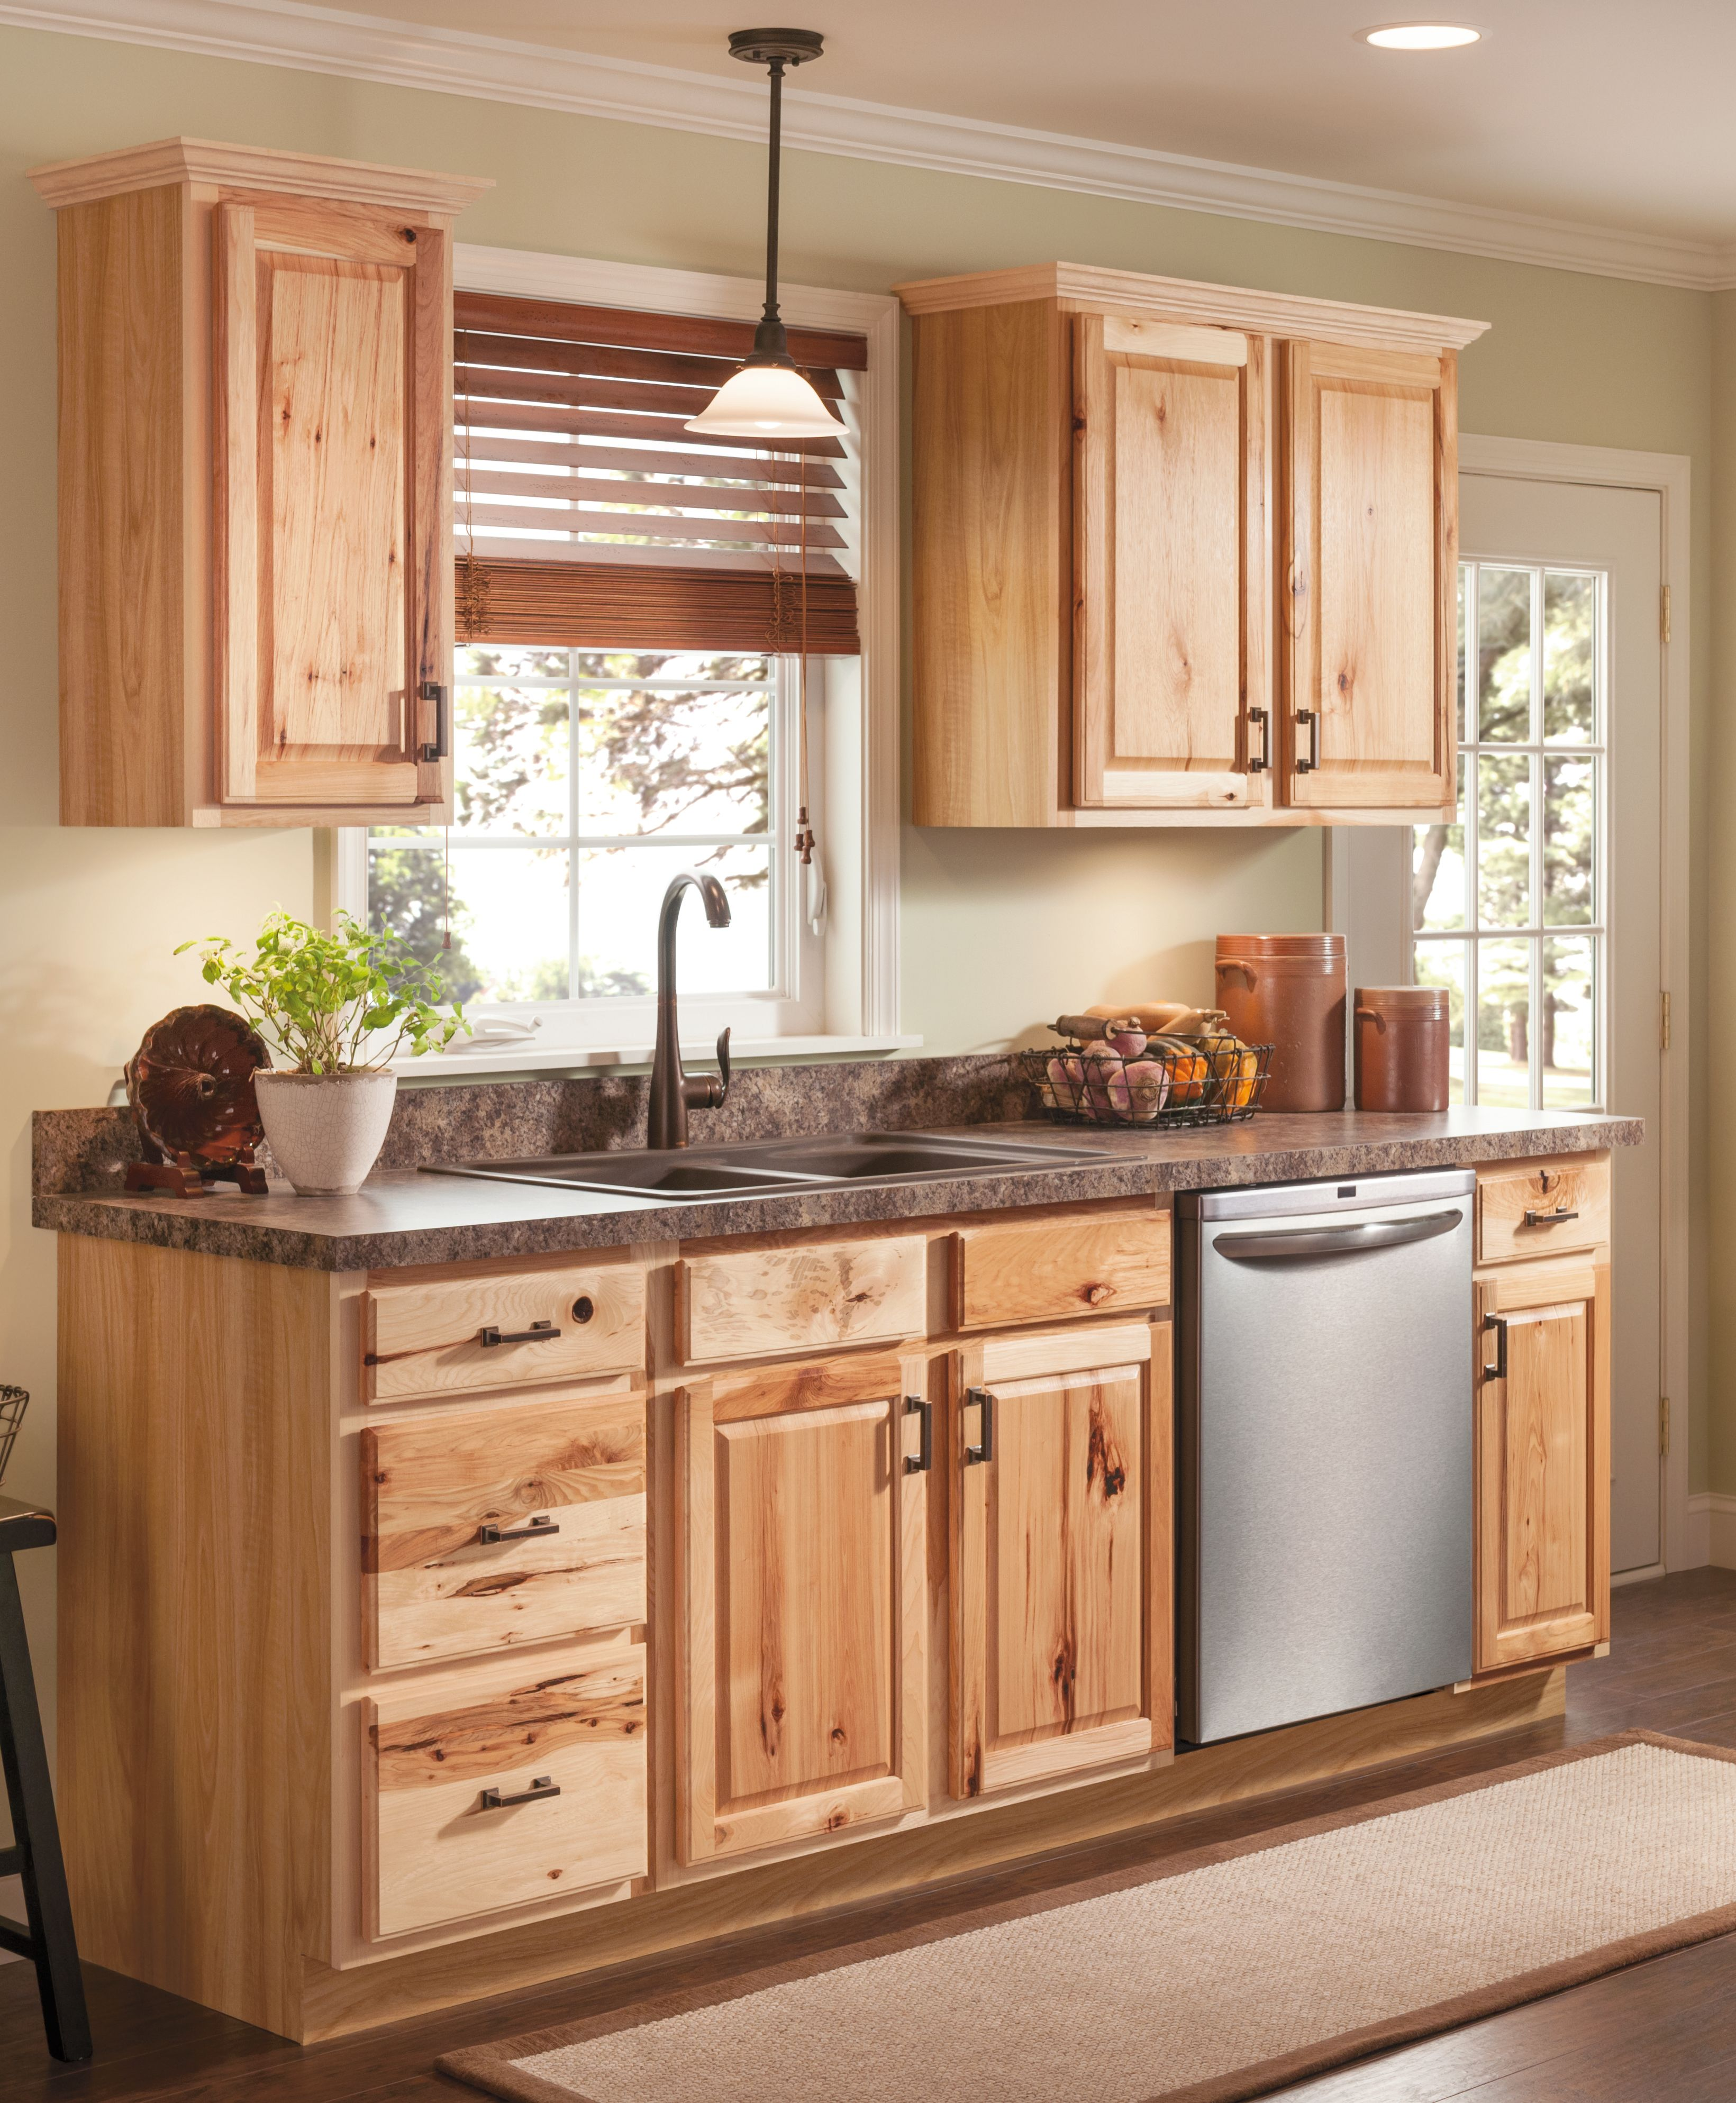 Beautiful Hickory Cabinets For A Natural Looking Kitchen Http Www Menards Com Main Sear Hickory Kitchen Cabinets Kitchen Cabinet Design New Kitchen Cabinets